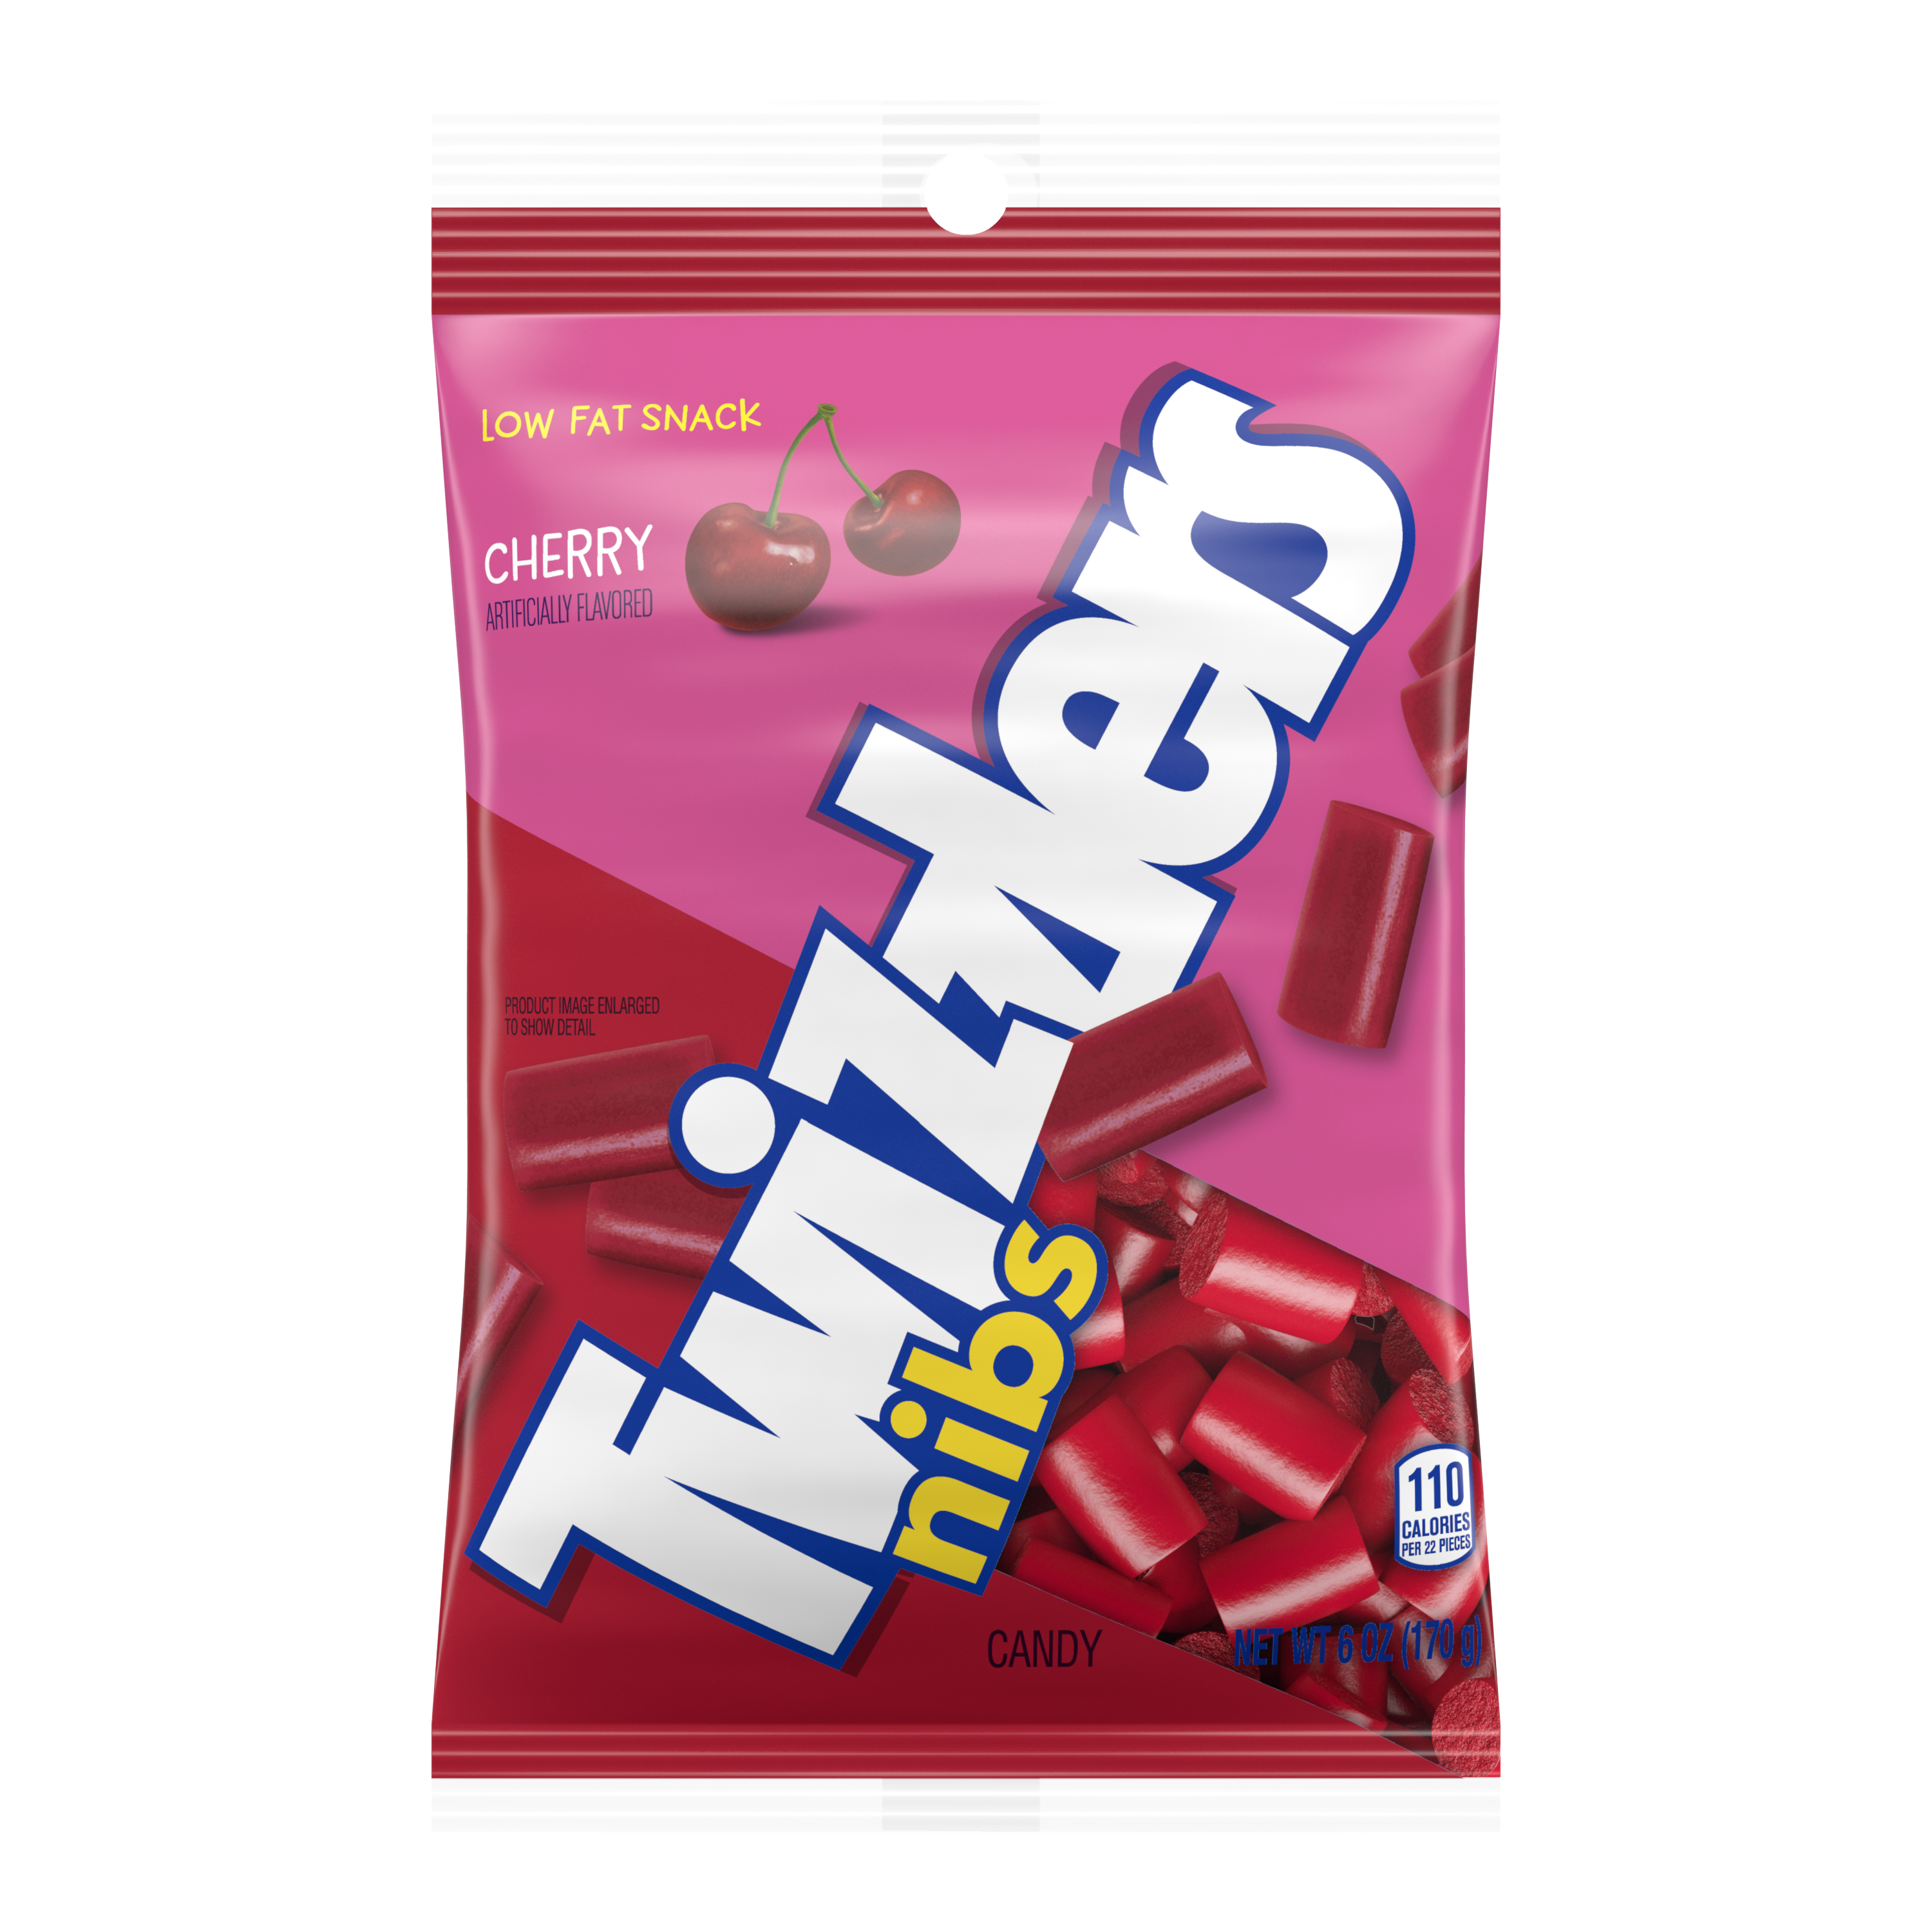 TWIZZLERS NIBS Cherry Flavored Candy, 6 oz bag - Front of Package